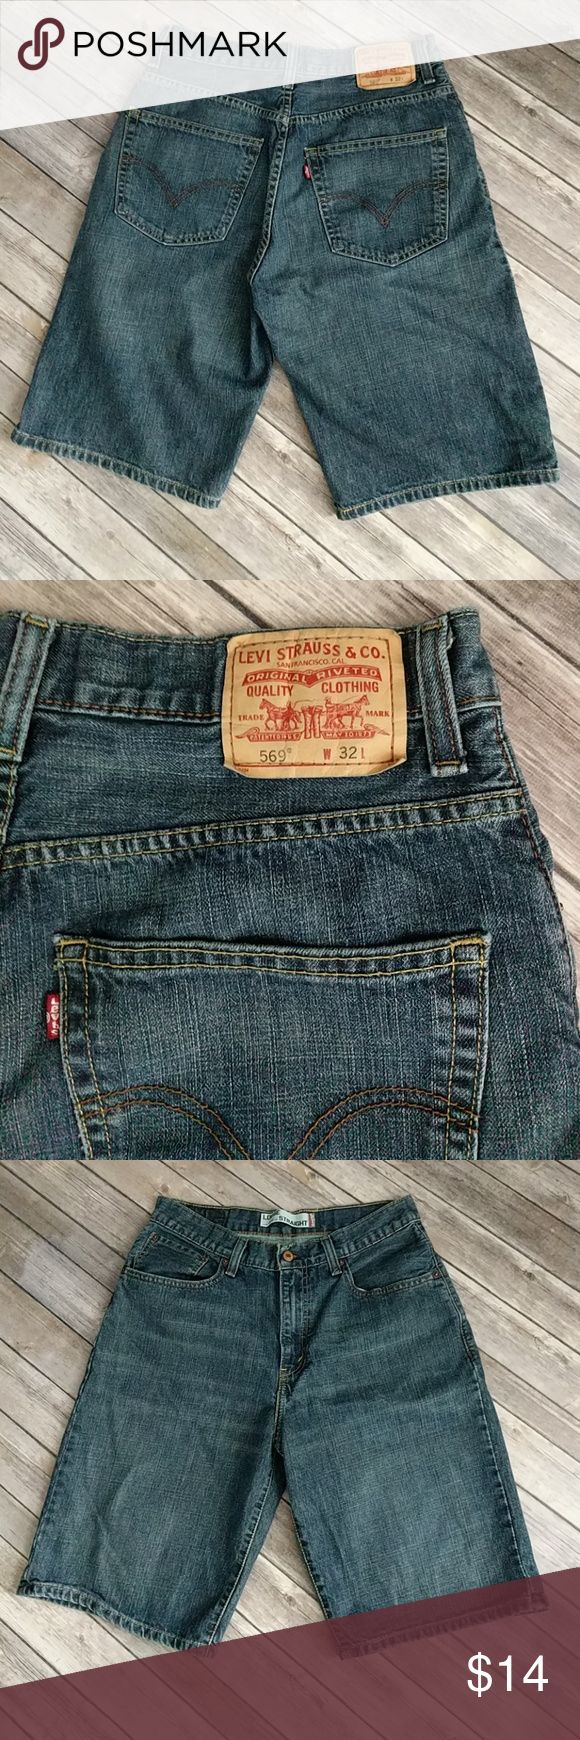 """Men's Loose Straight Levi's 569 Shorts Jean shorts in excellent used condition. Waist 16"""" laying flat. Rise 12"""". Inseam 11 1/2"""". Levi's Shorts Jean Shorts"""